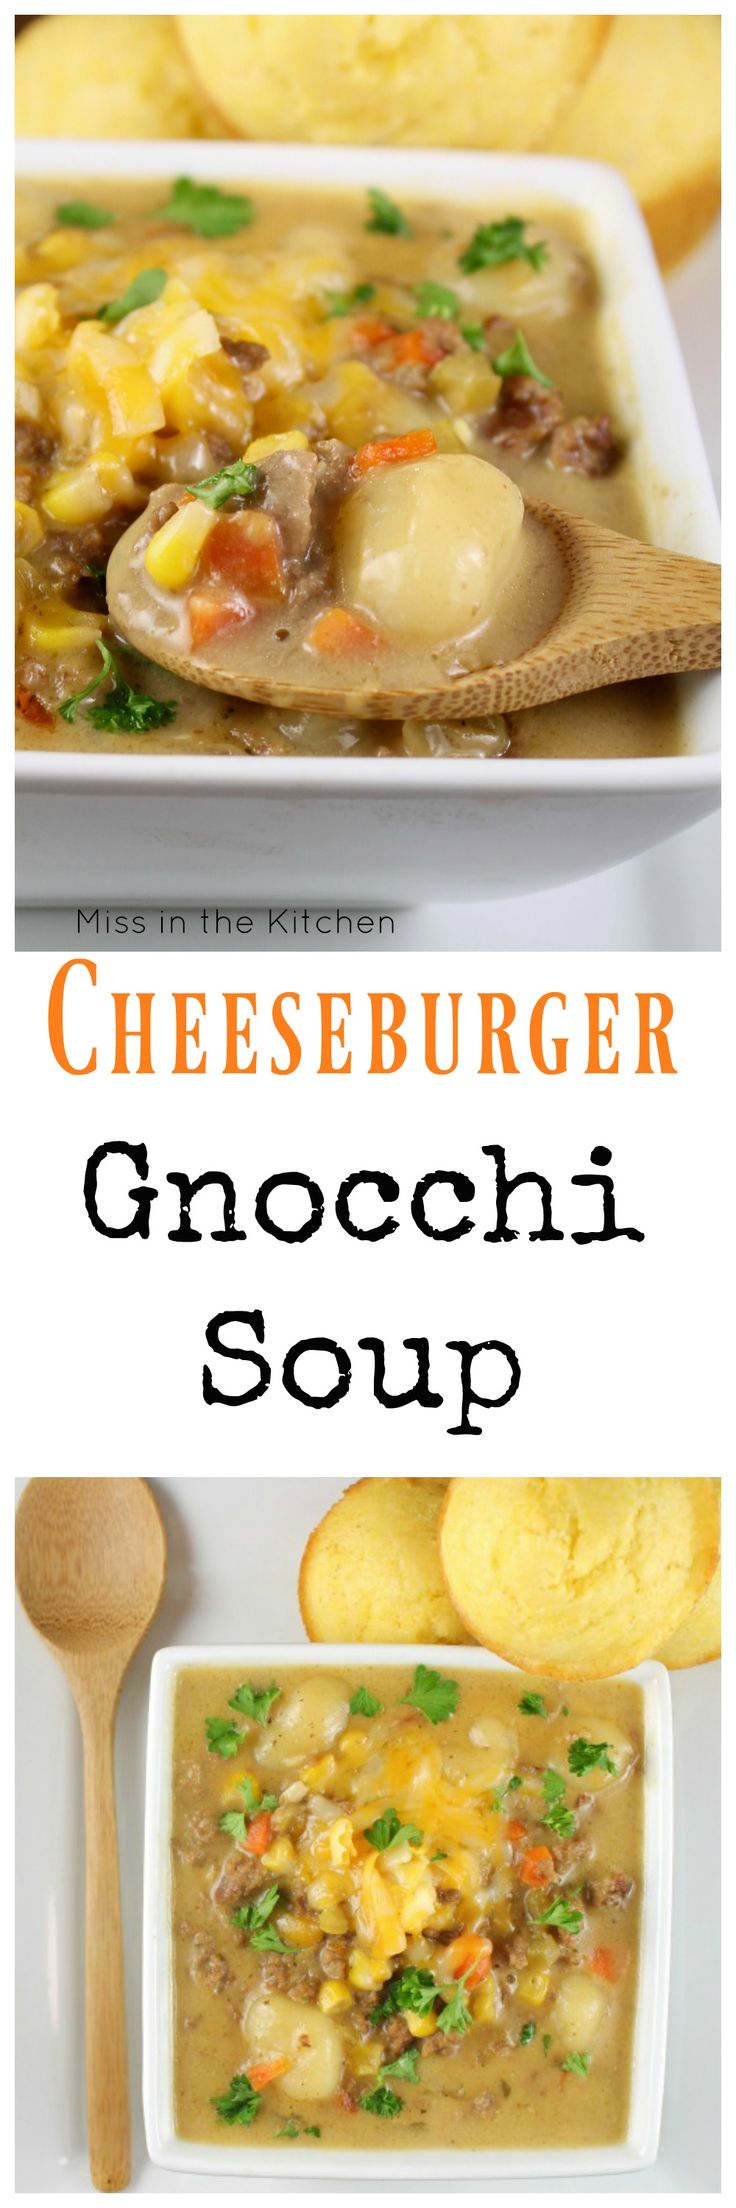 Cheeseburger Gnocchi Soup is the perfect comfort food to warm you right up on a cold evening! This is an easy and delicious dinner that the entire family can agree on. Recipe from MissintheKitchen.com